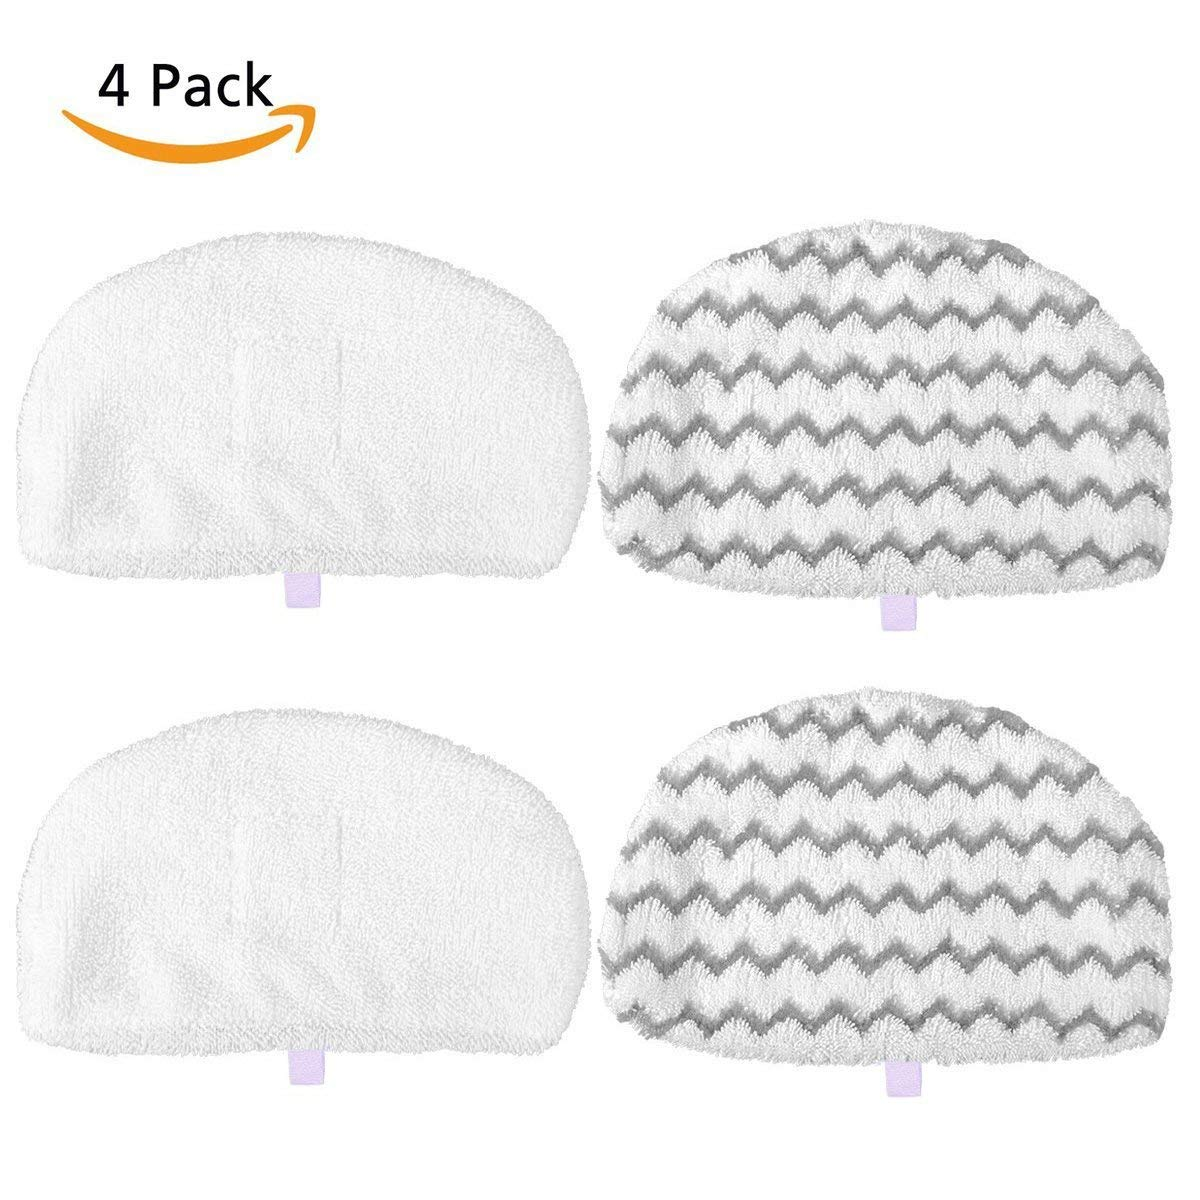 MarlaMall 4 Pack Washable Steam Mop Pads Replacement for Bissell Powerfresh 1940 Series, 1544A, 2075A, 1440, 1940W, 19404, 1806, 1940A, 5938, 19408, 1940Q